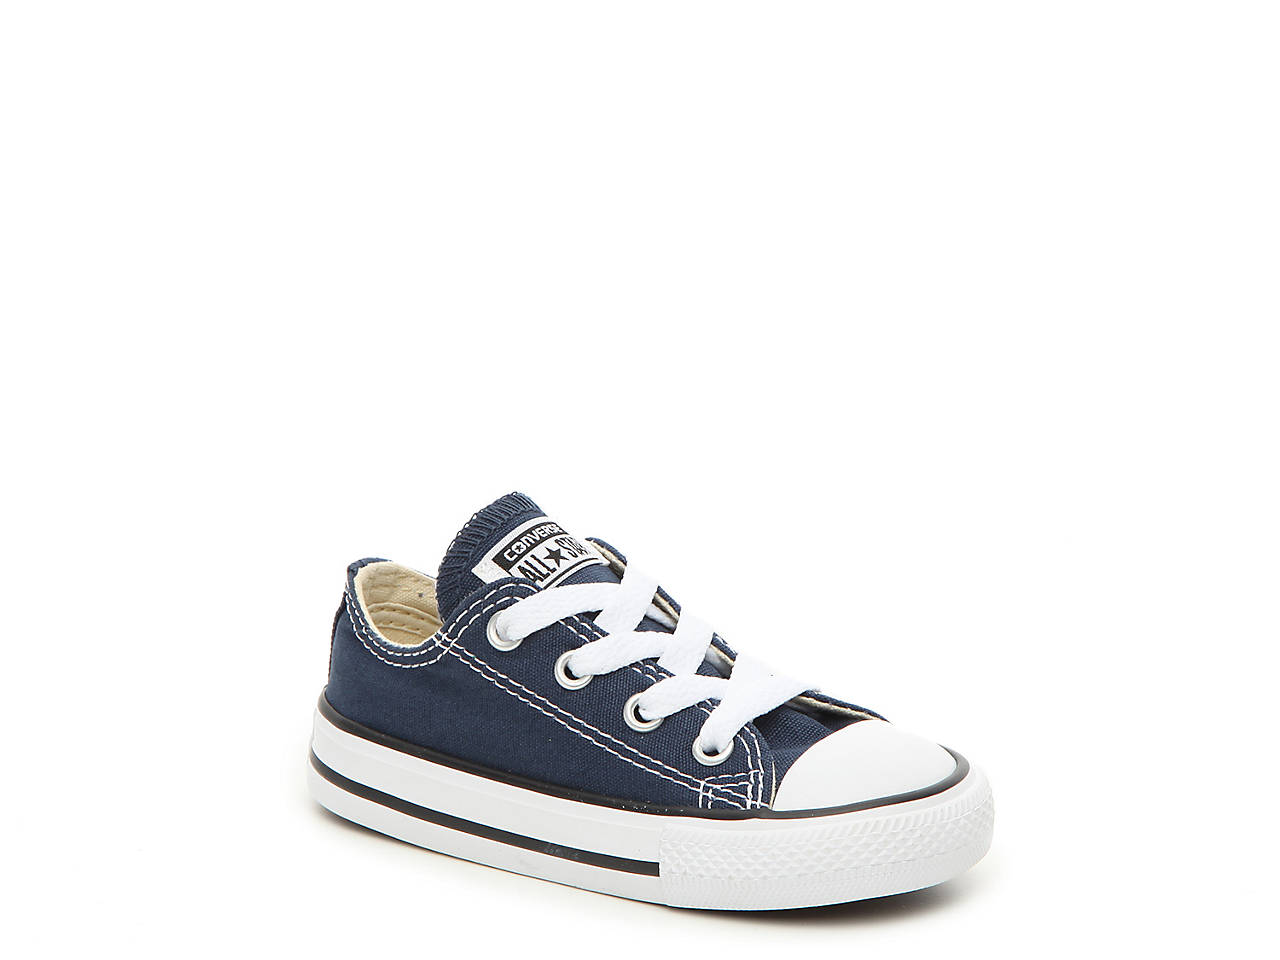 c2e62855c99e Converse Chuck Taylor All Star Infant   Toddler Sneaker Kids Shoes